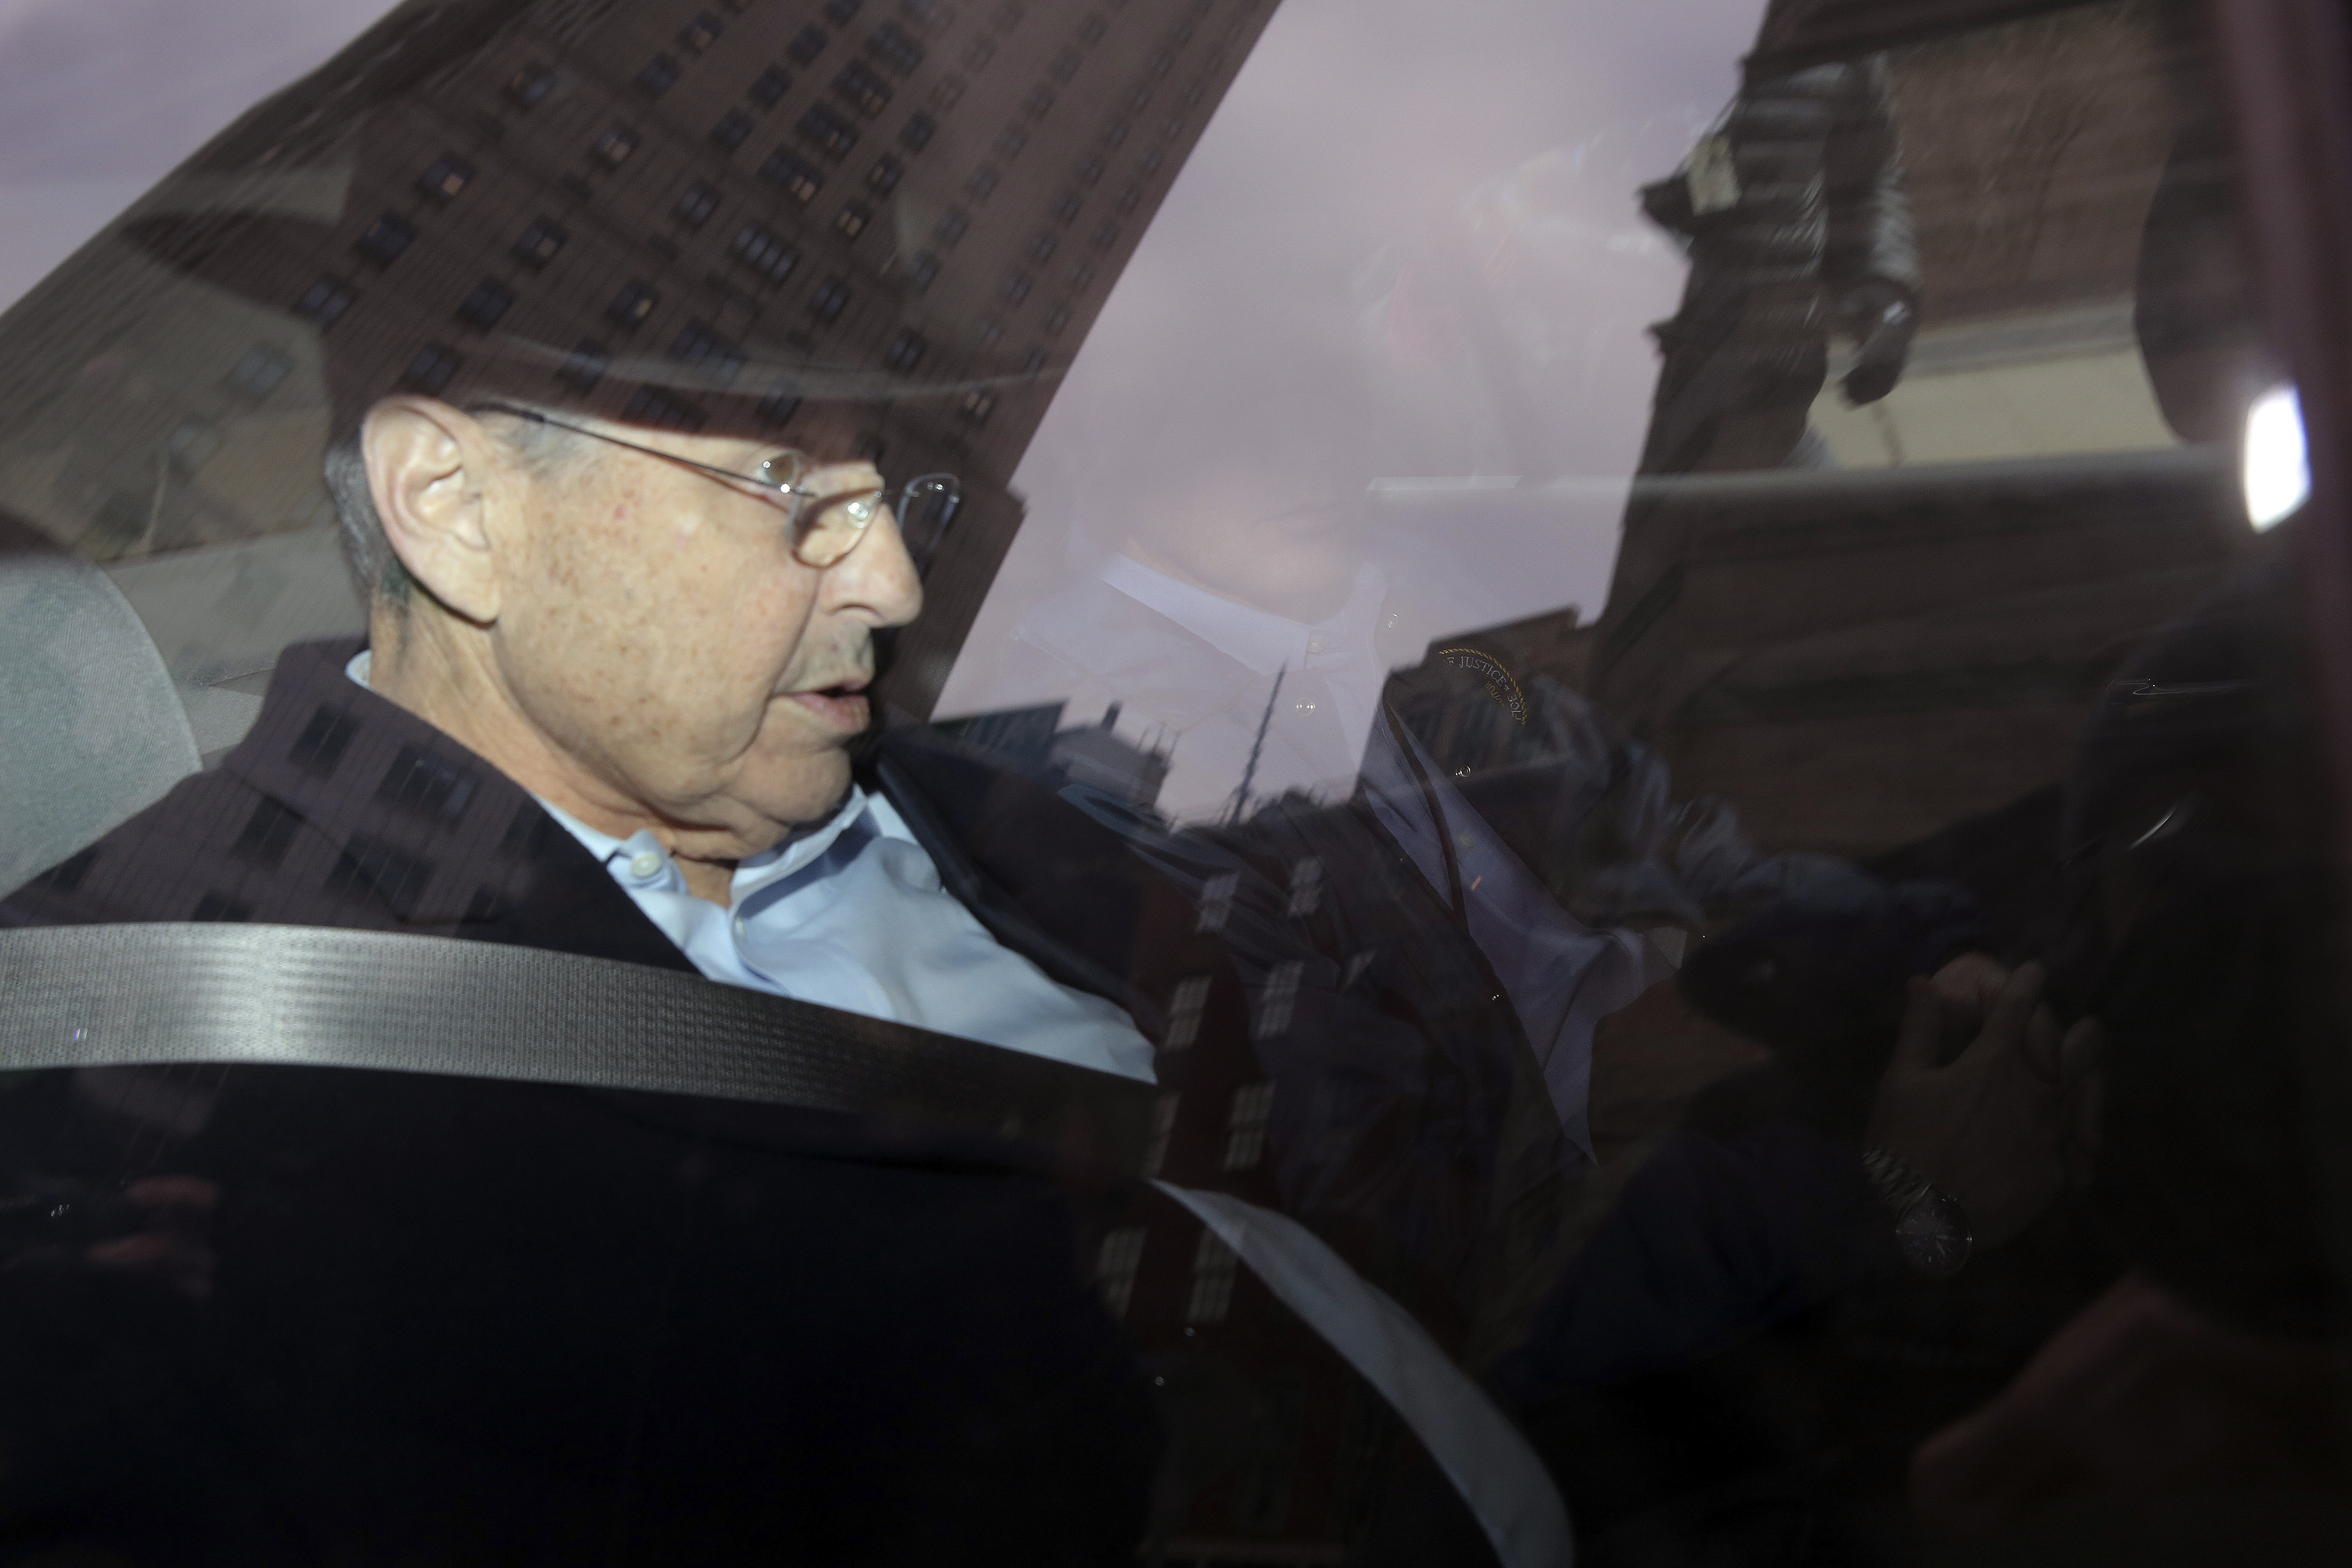 Assembly Speaker Sheldon Silver leaves Federal Plaza in Manhattan after being arrested earlier, on Thursday, in New York, Jan. 22, 2015.  (The New York Times)